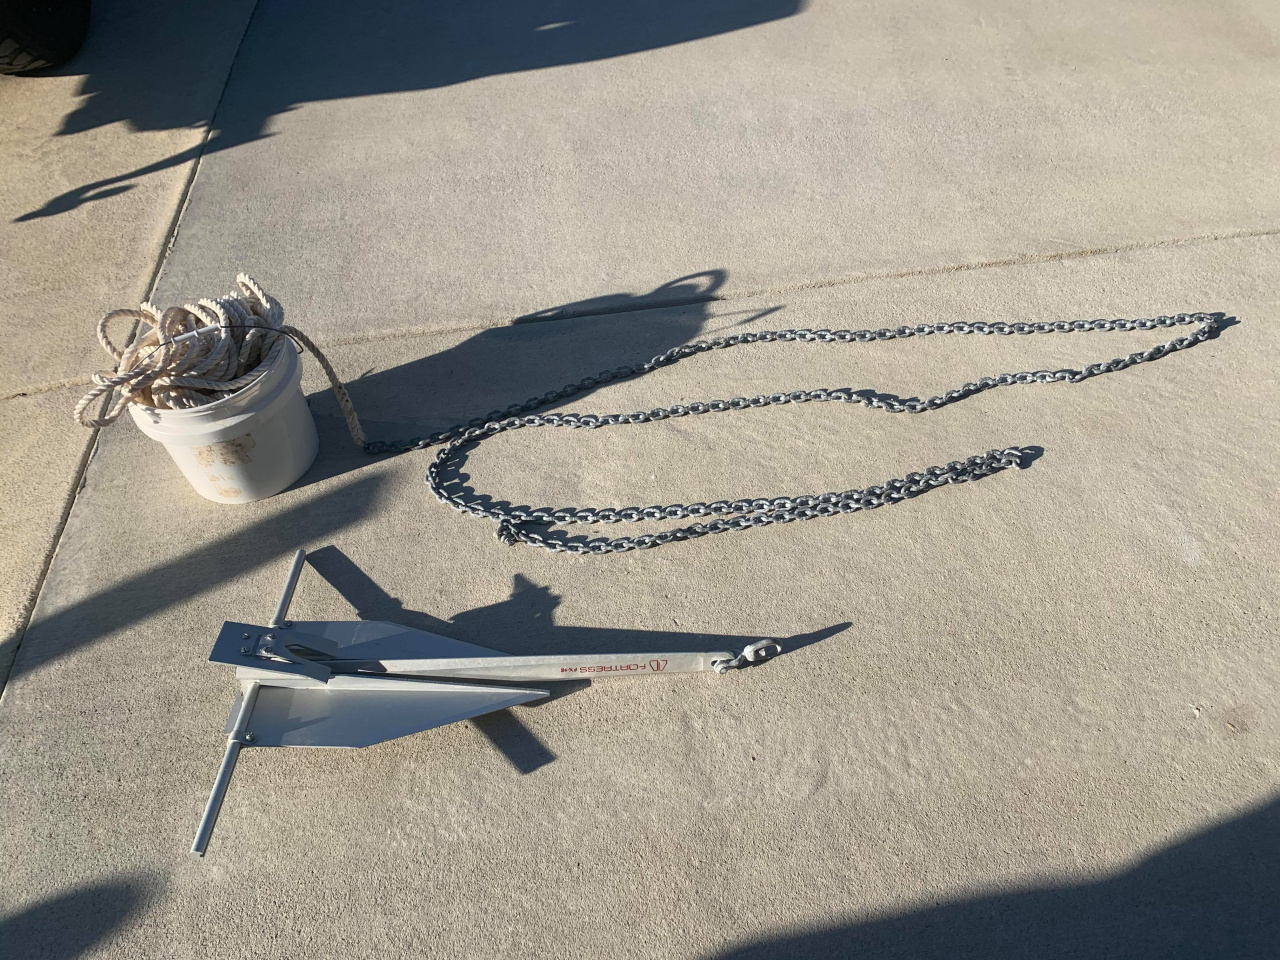 Fortress FX-16 Anchor, Chain, and Rope-78289371_970978513286021_2637955345401511936_n-jpg